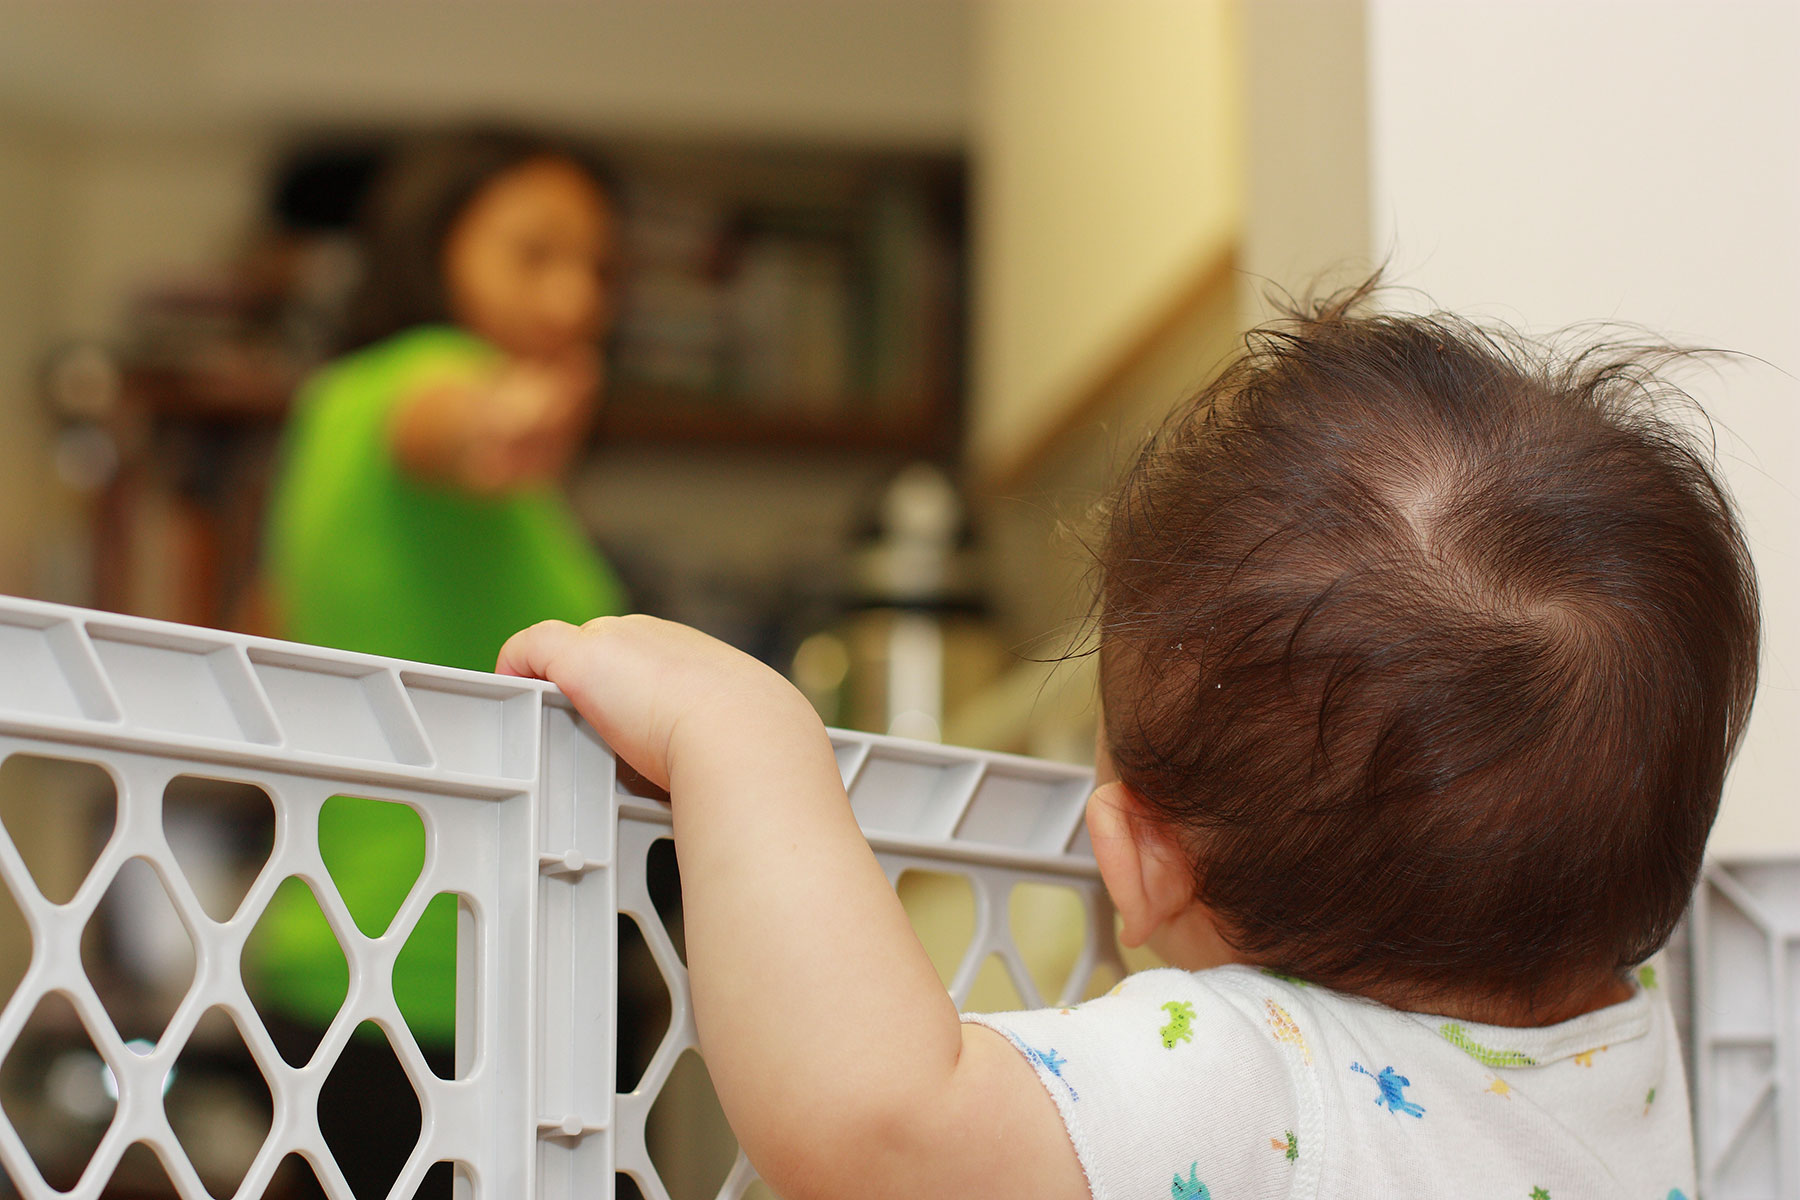 Baby Peering Over a Safety Gate